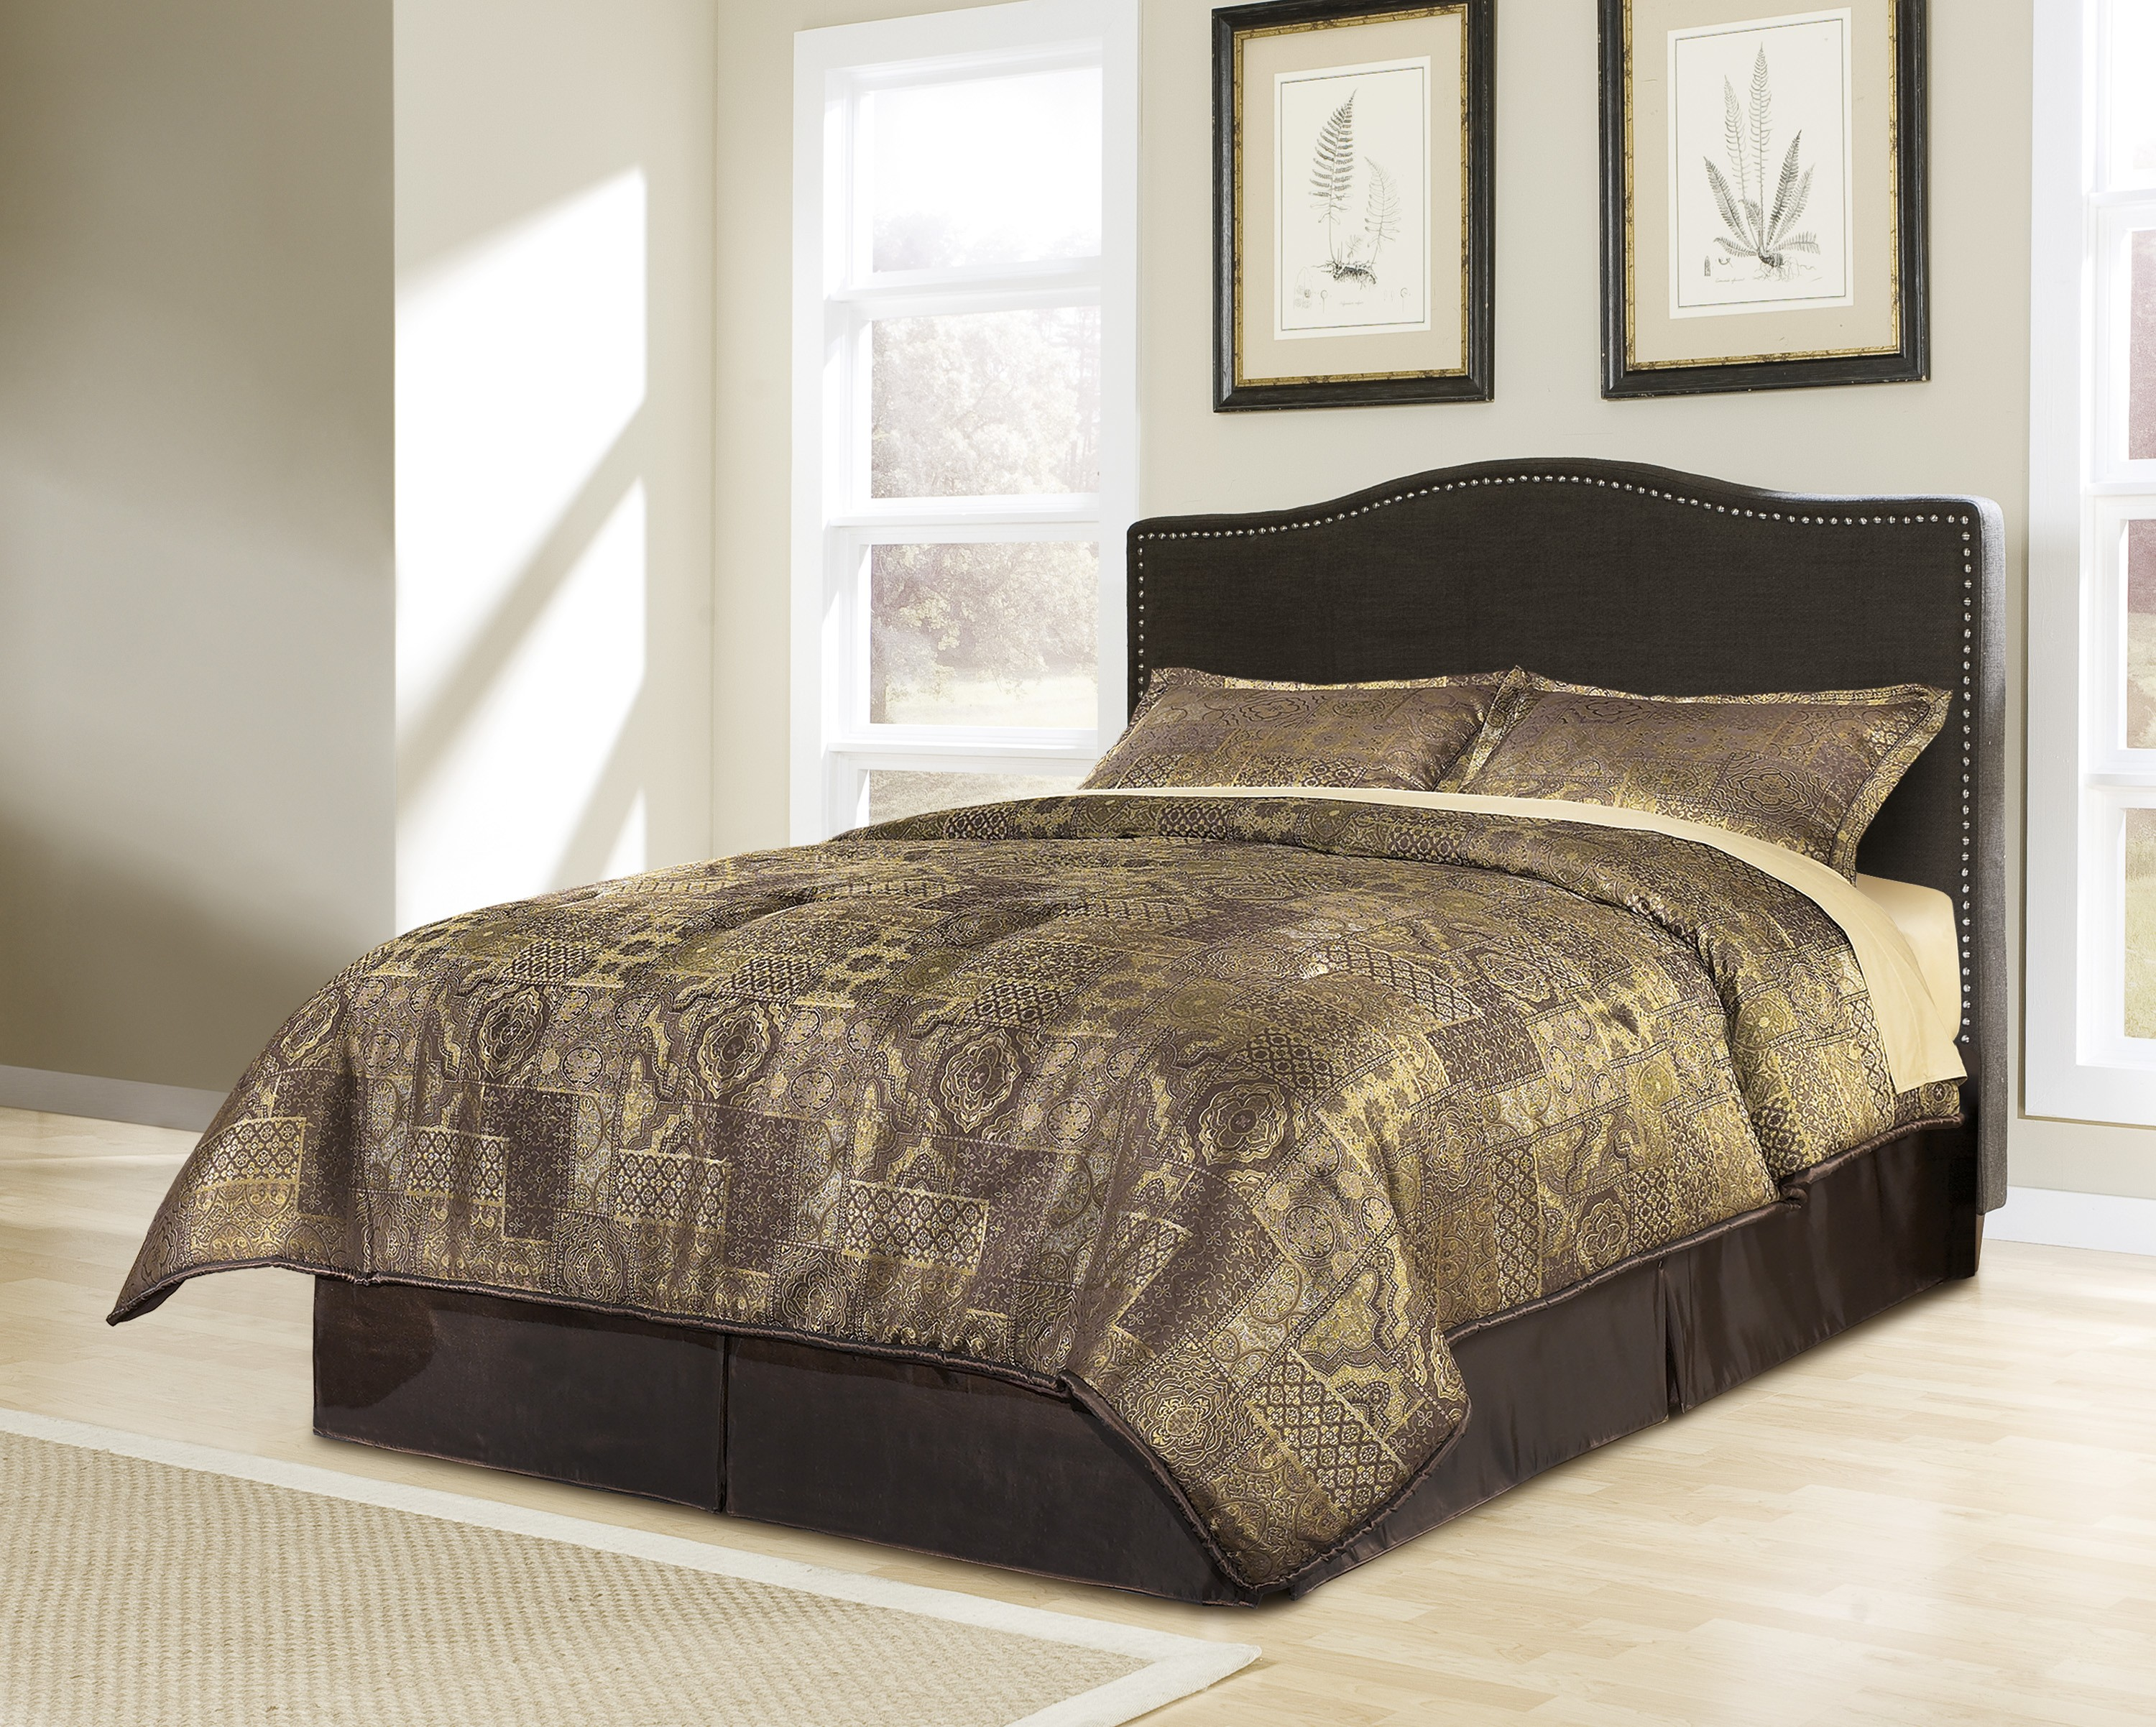 King Headboards | Twin Comforter Set | Taupe Comforter Sets Queen